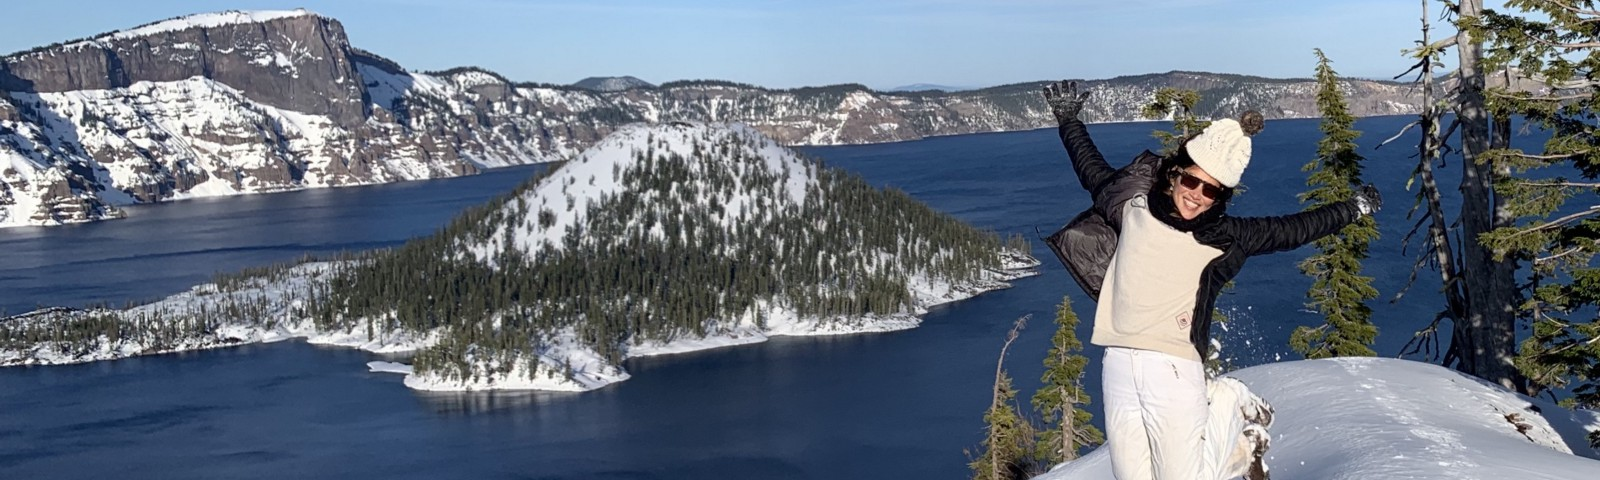 The author jumping high over the snow at the edge of Crater Lake, OR